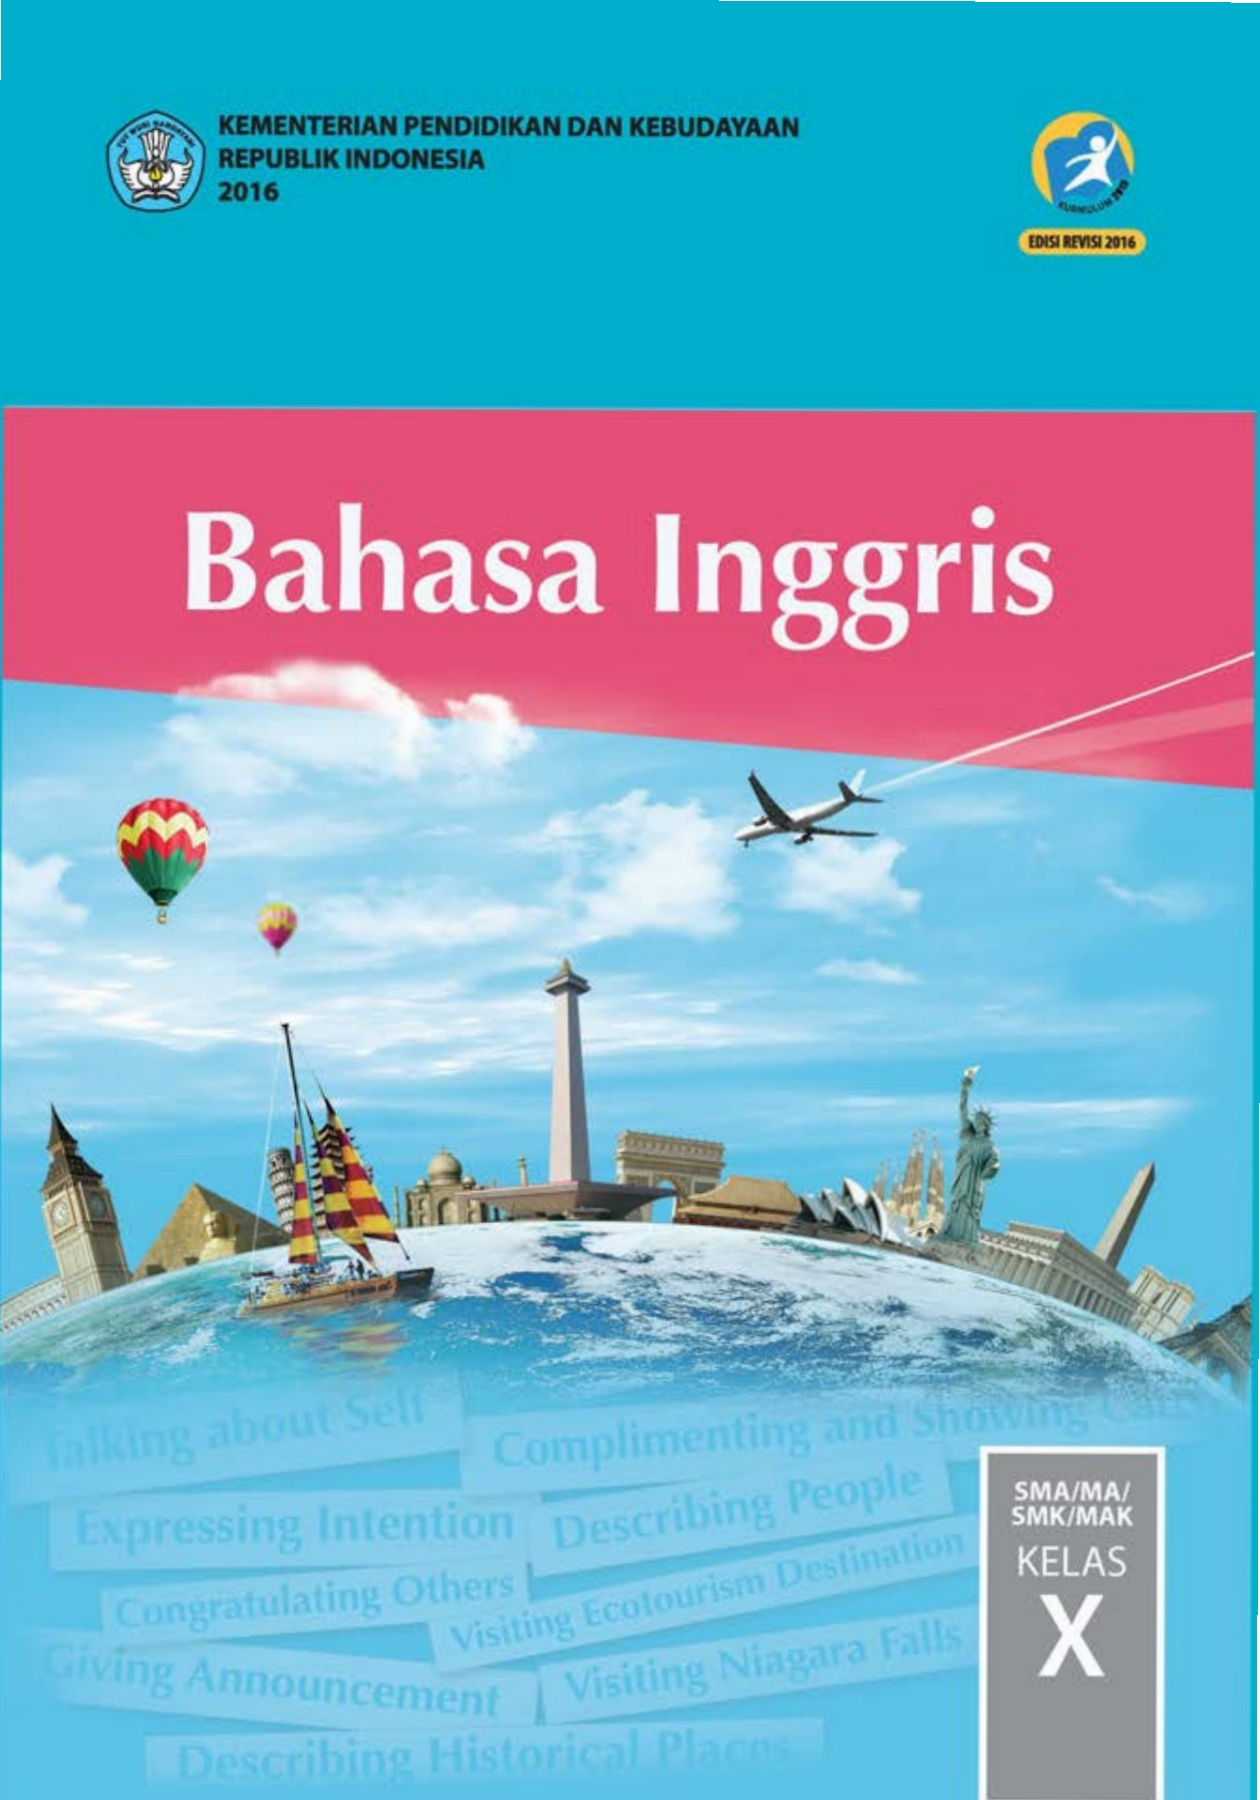 Bahasa Inggris 2016 : bahasa, inggris, Bahasa, Inggris, Kelas, X-Flip, EBook, Pages, AnyFlip